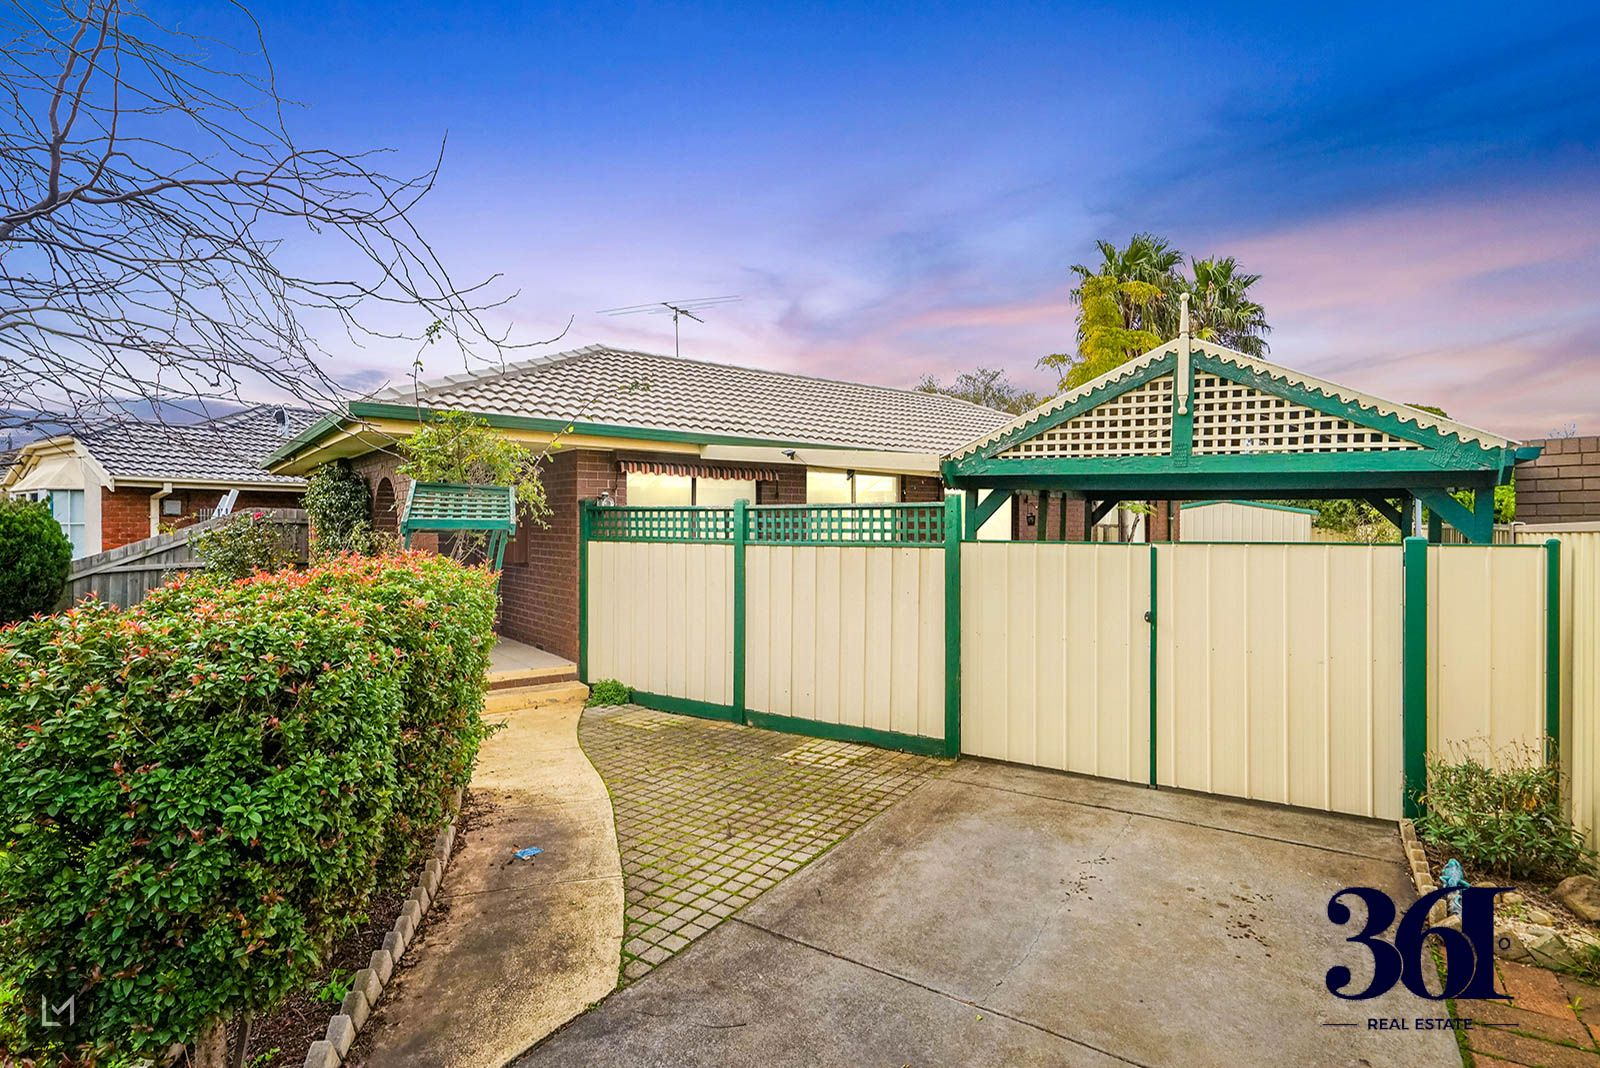 164 Derrimut Rd, Hoppers Crossing VIC 3029, Image 2